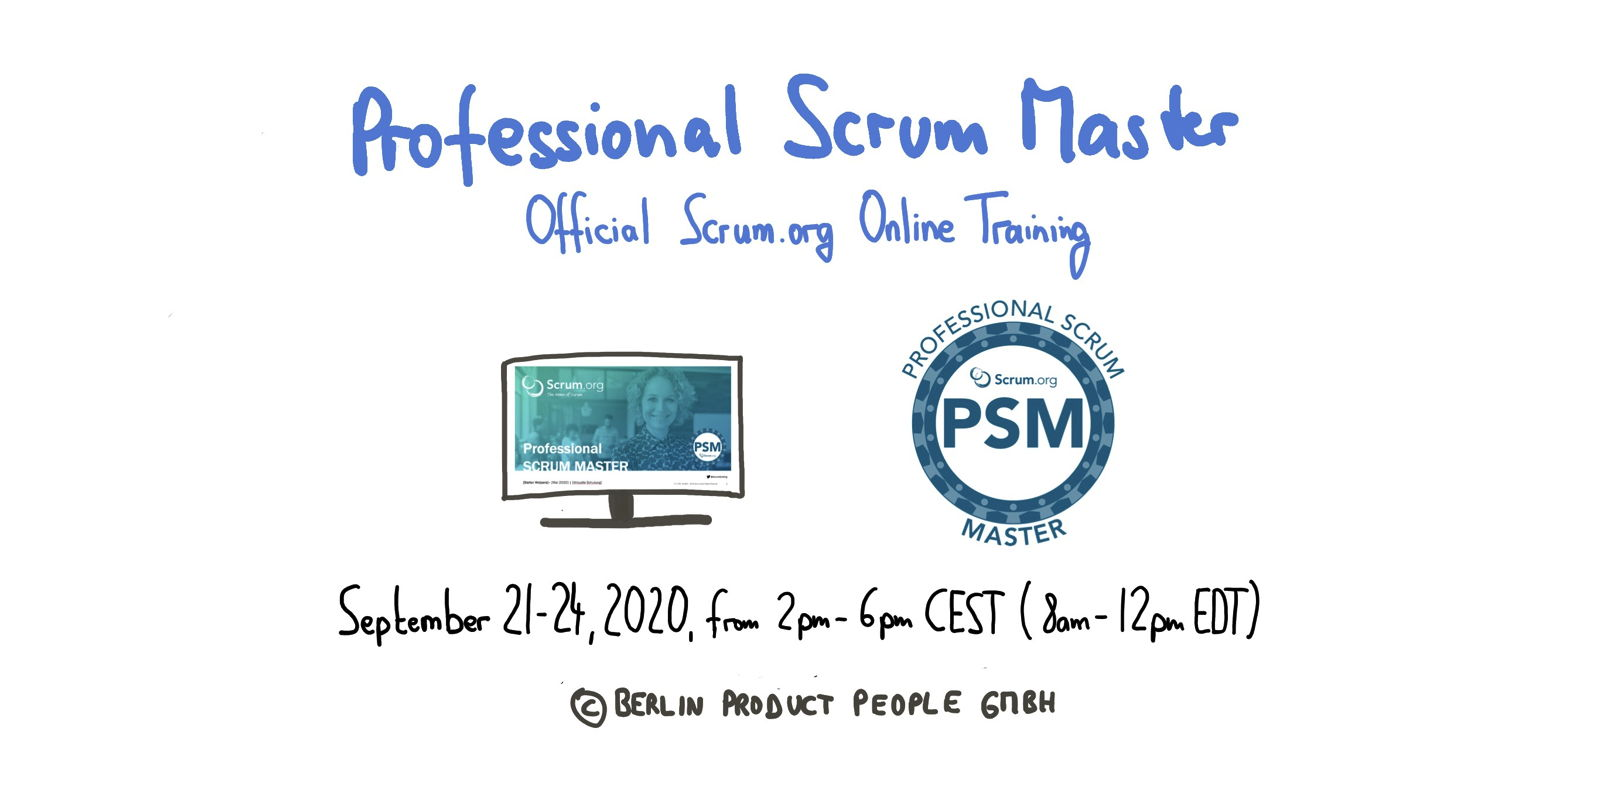 Professional Scrum Master Online Training PSM I — Berlin Product People GmbH